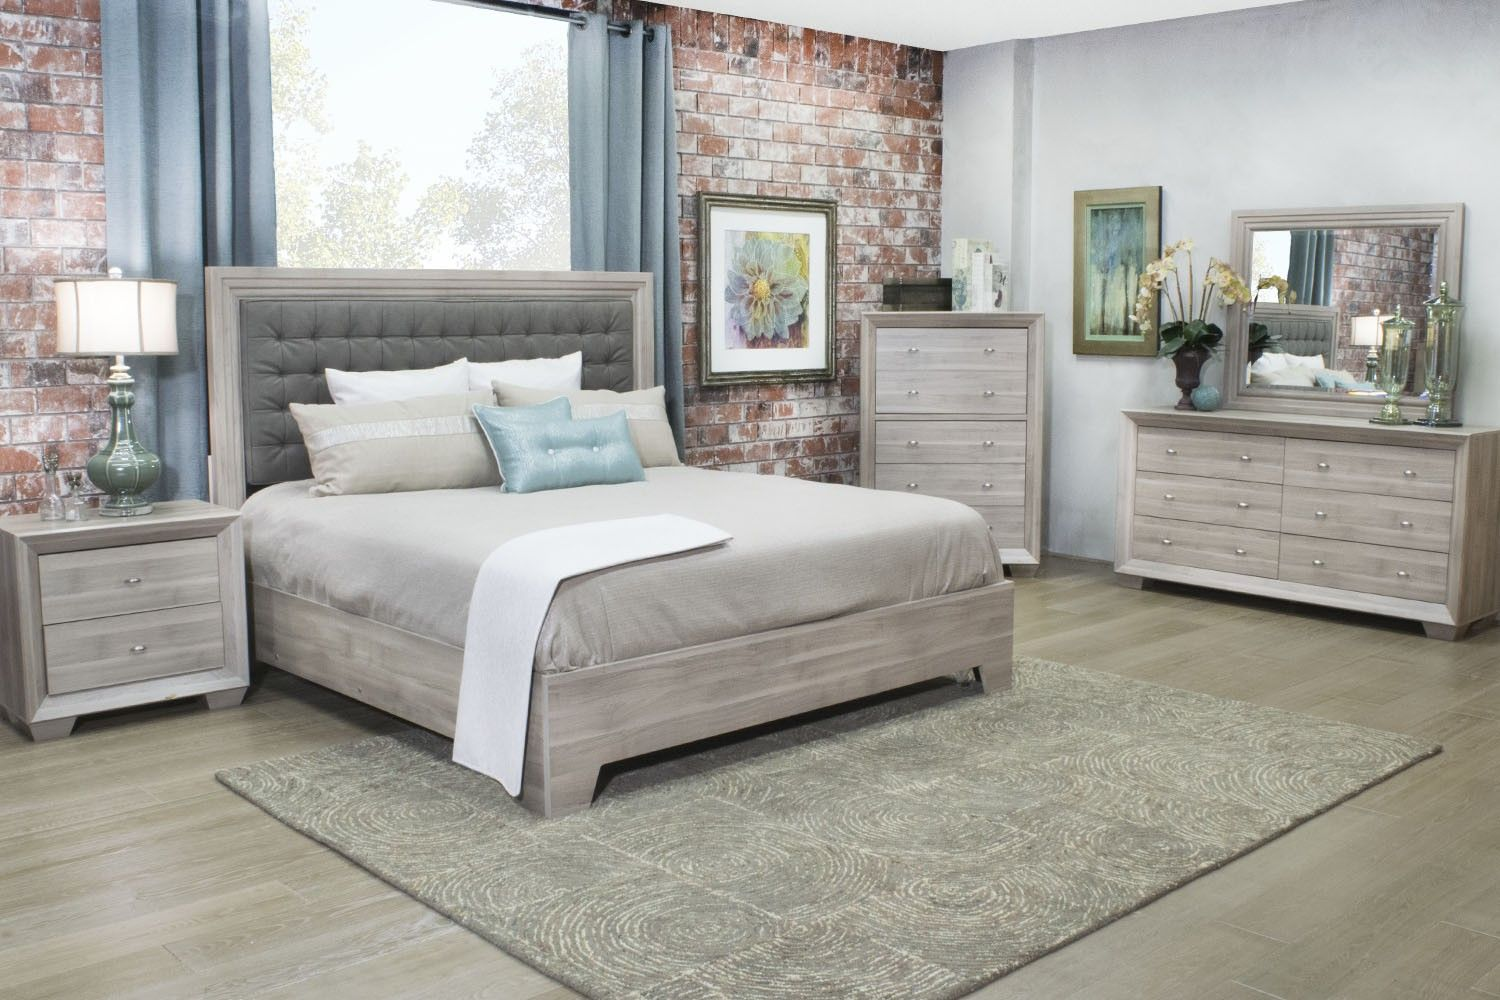 Mor Furniture For Less The Arketipo Birch Bedroom Mor Furniture